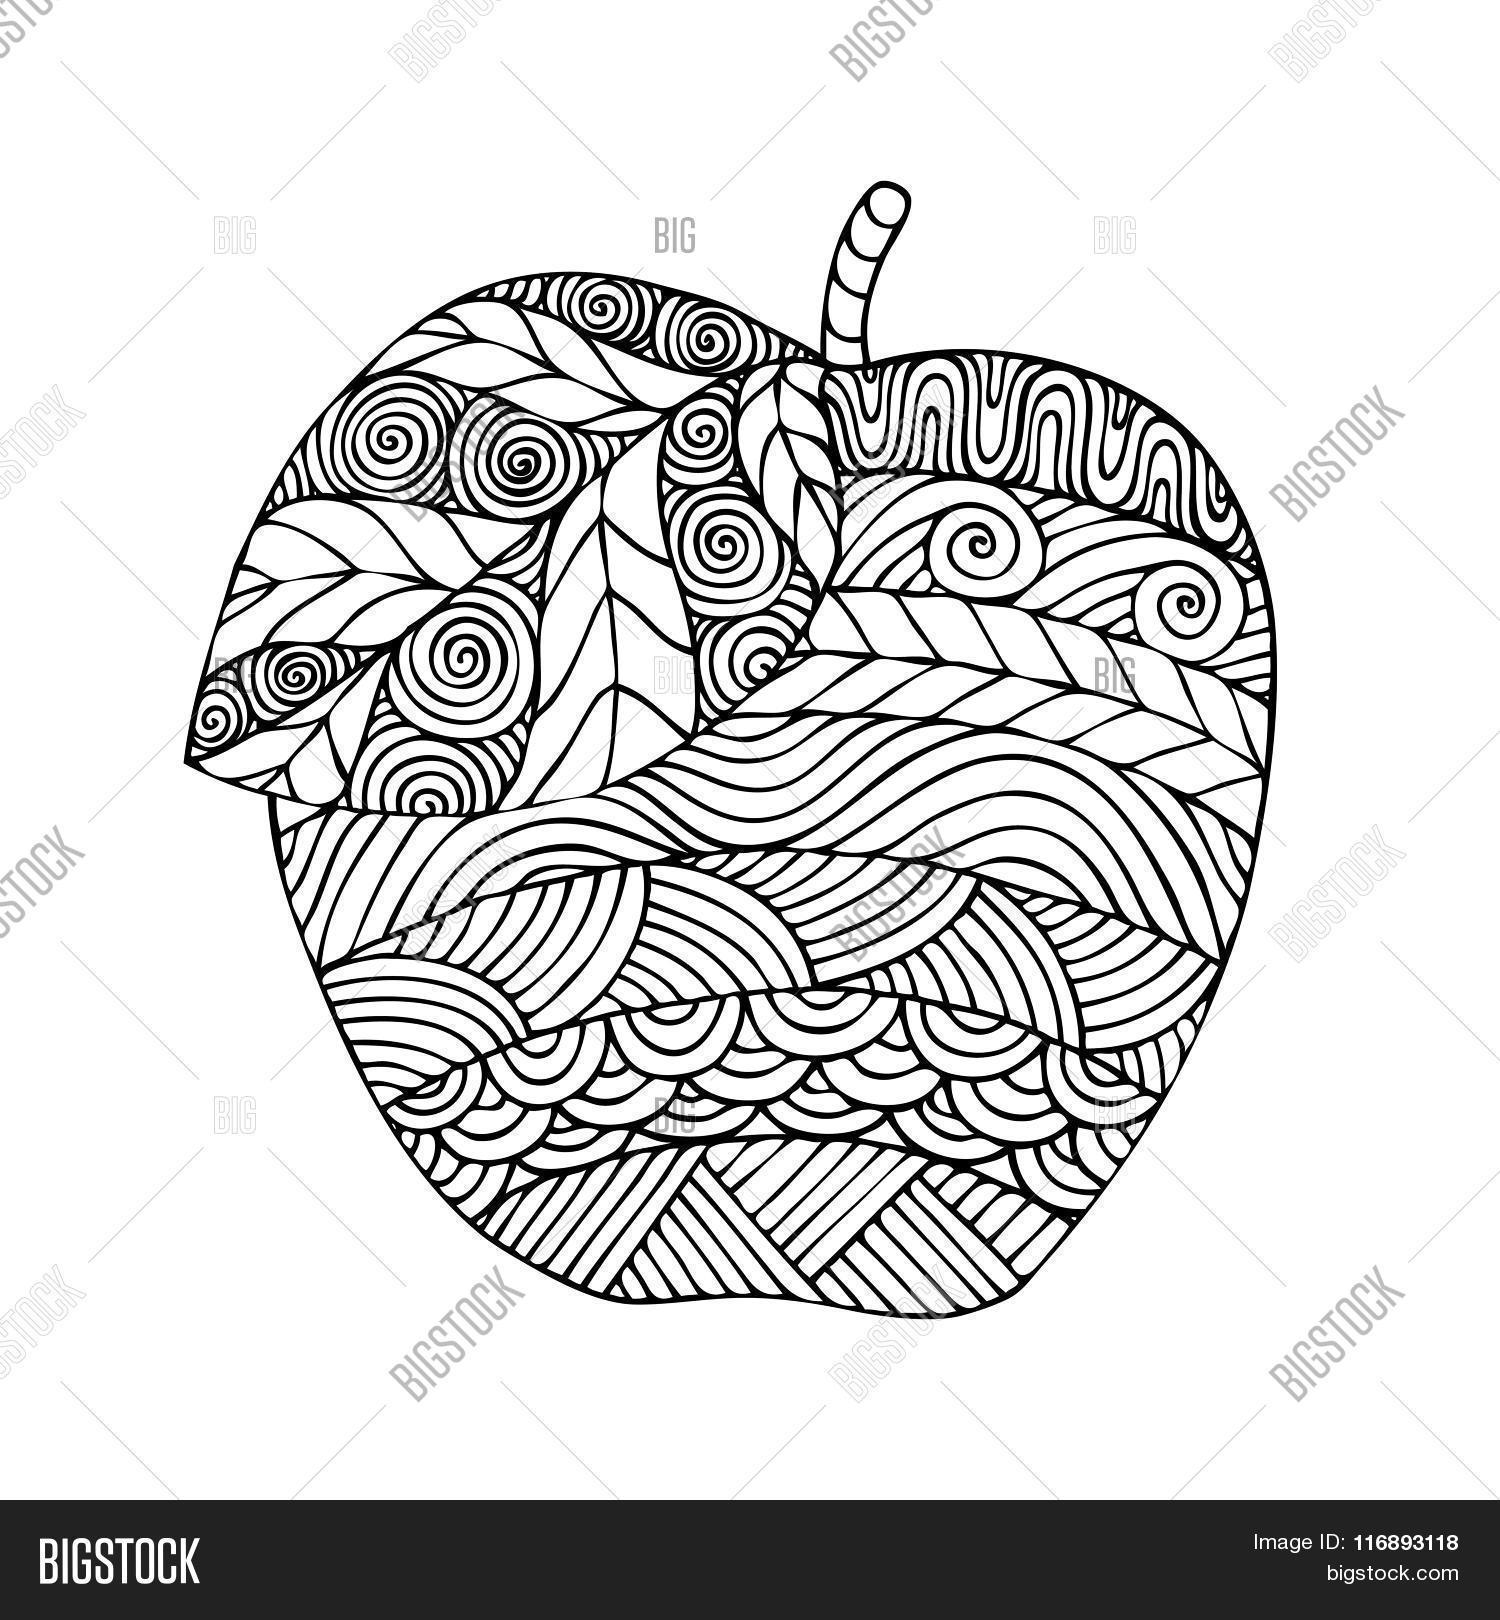 Adult Coloring Book Page Design With The Image Of An Apple